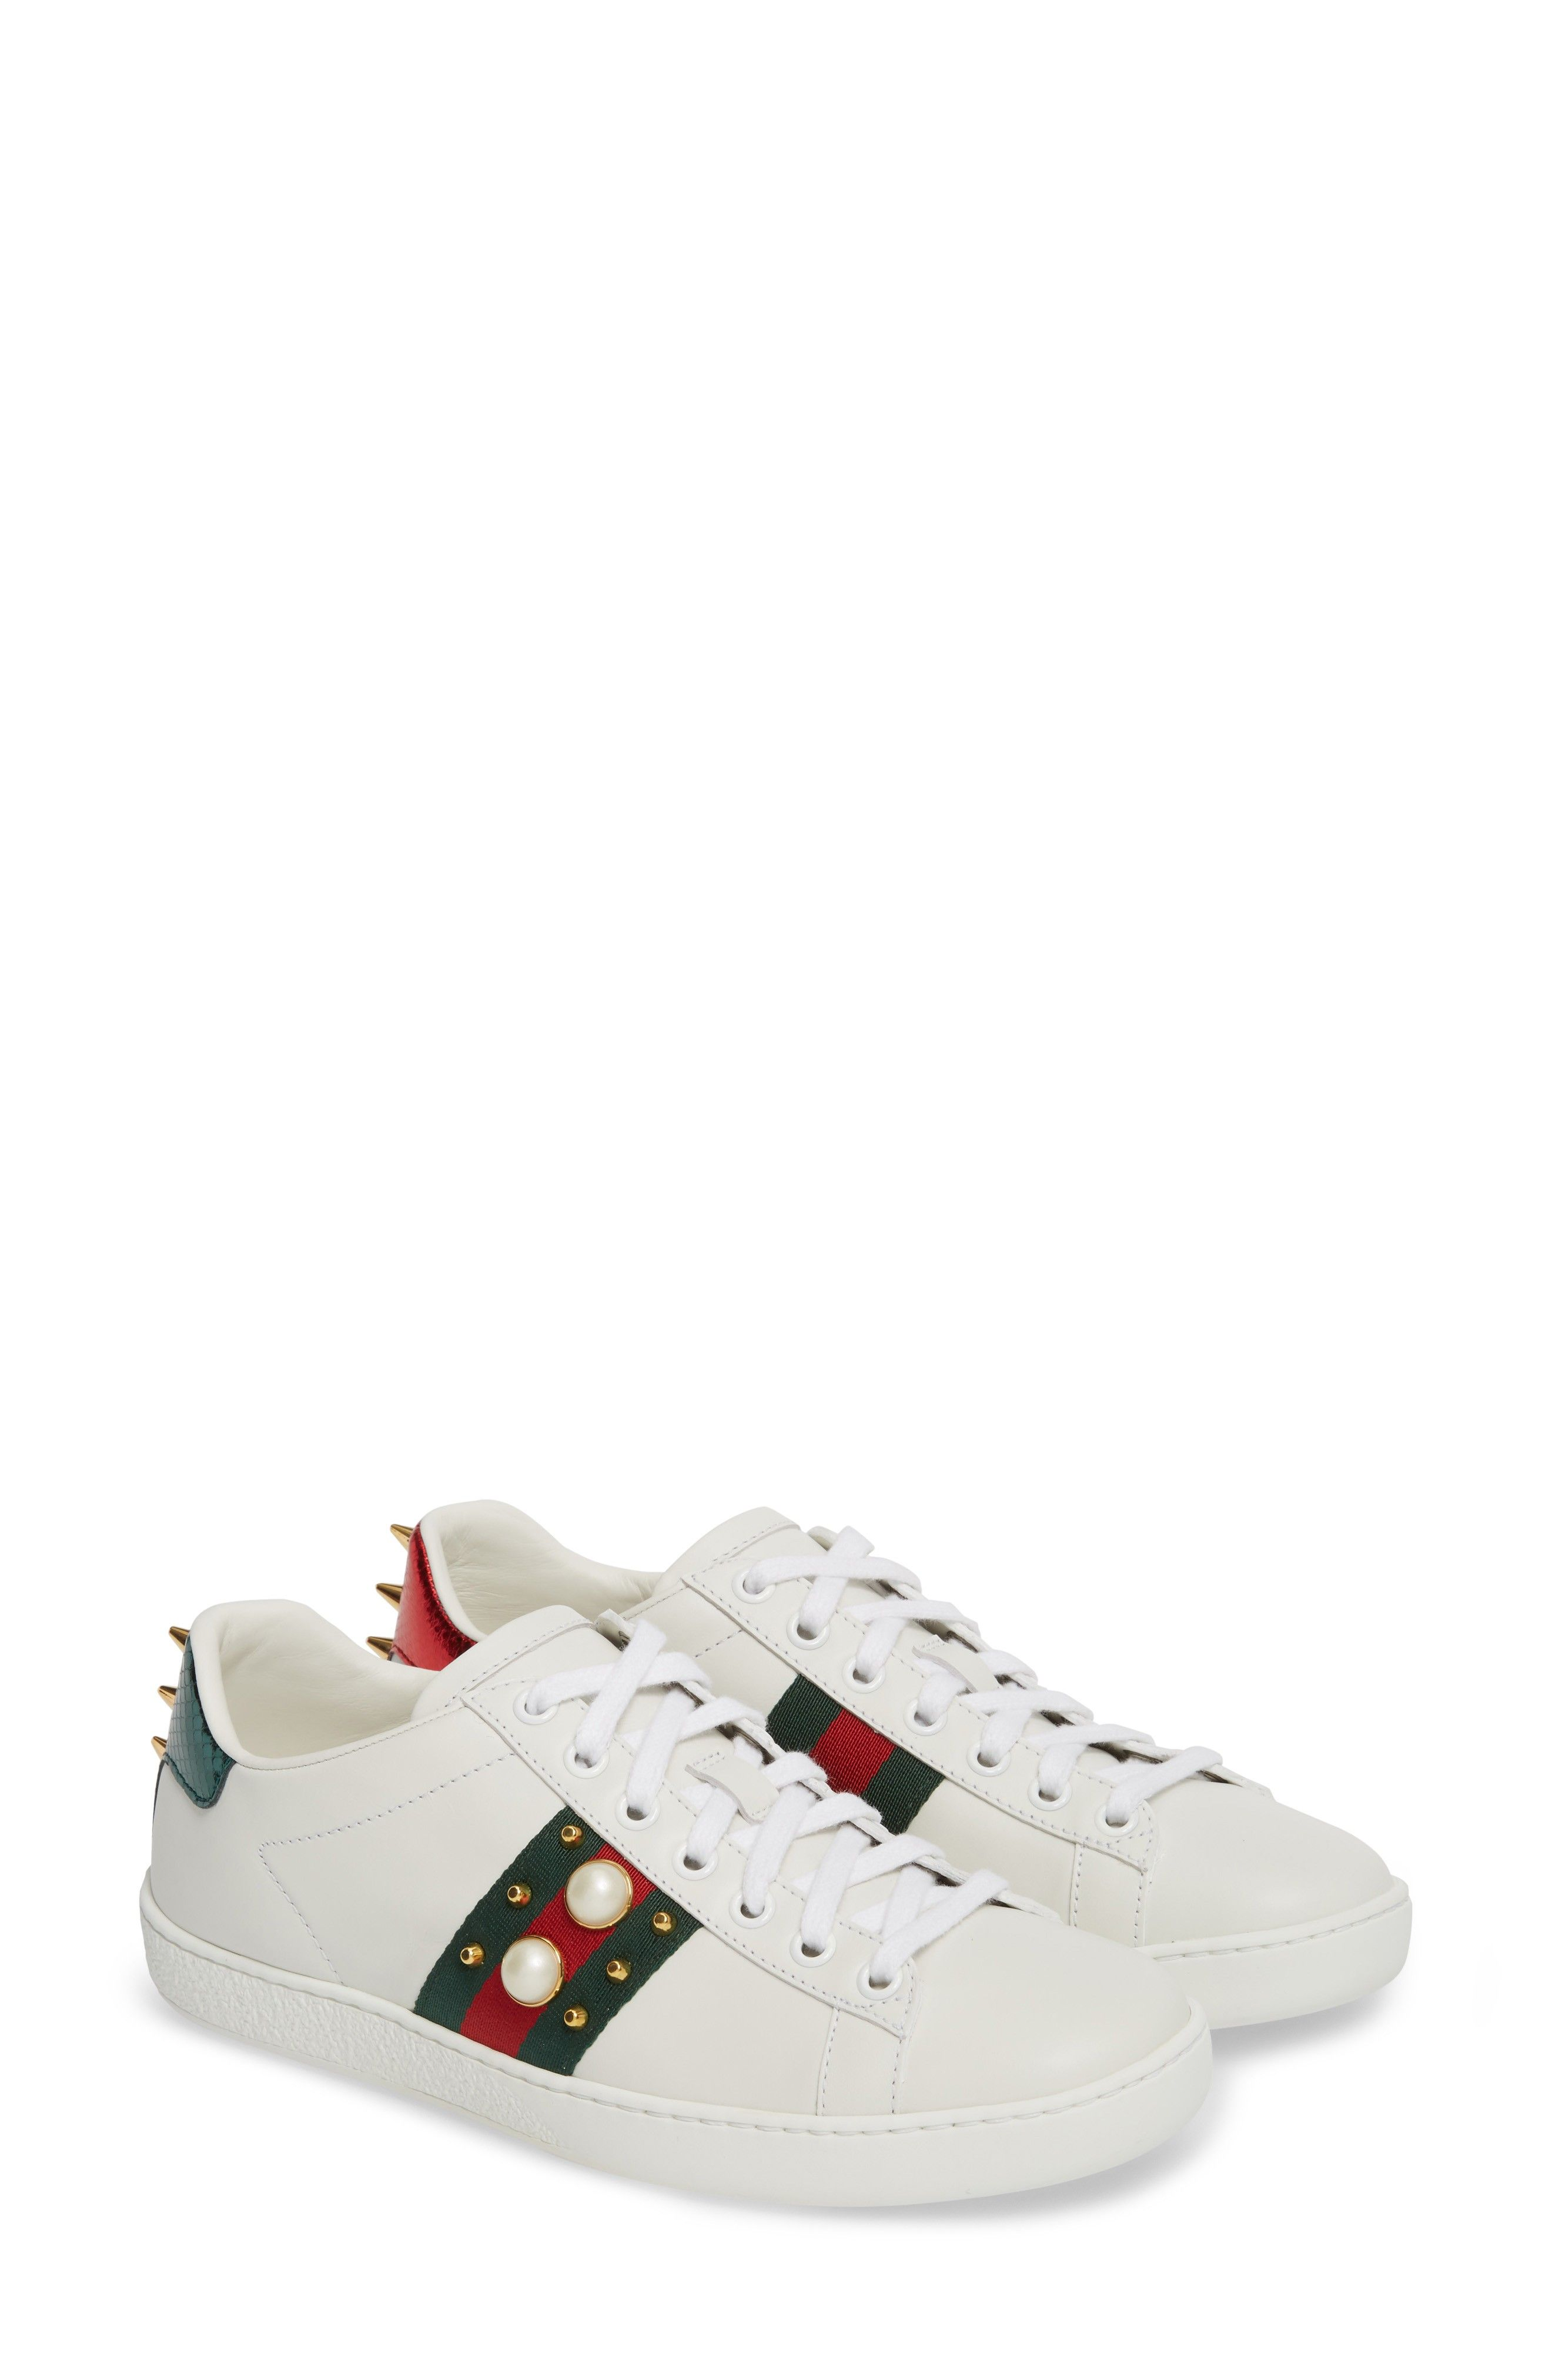 678ba1e787c Buy GUCCI  New Ace  Low Top Sneaker online. New GUCCI Shoes.   730  SKU  XDSW94960LAQX46182